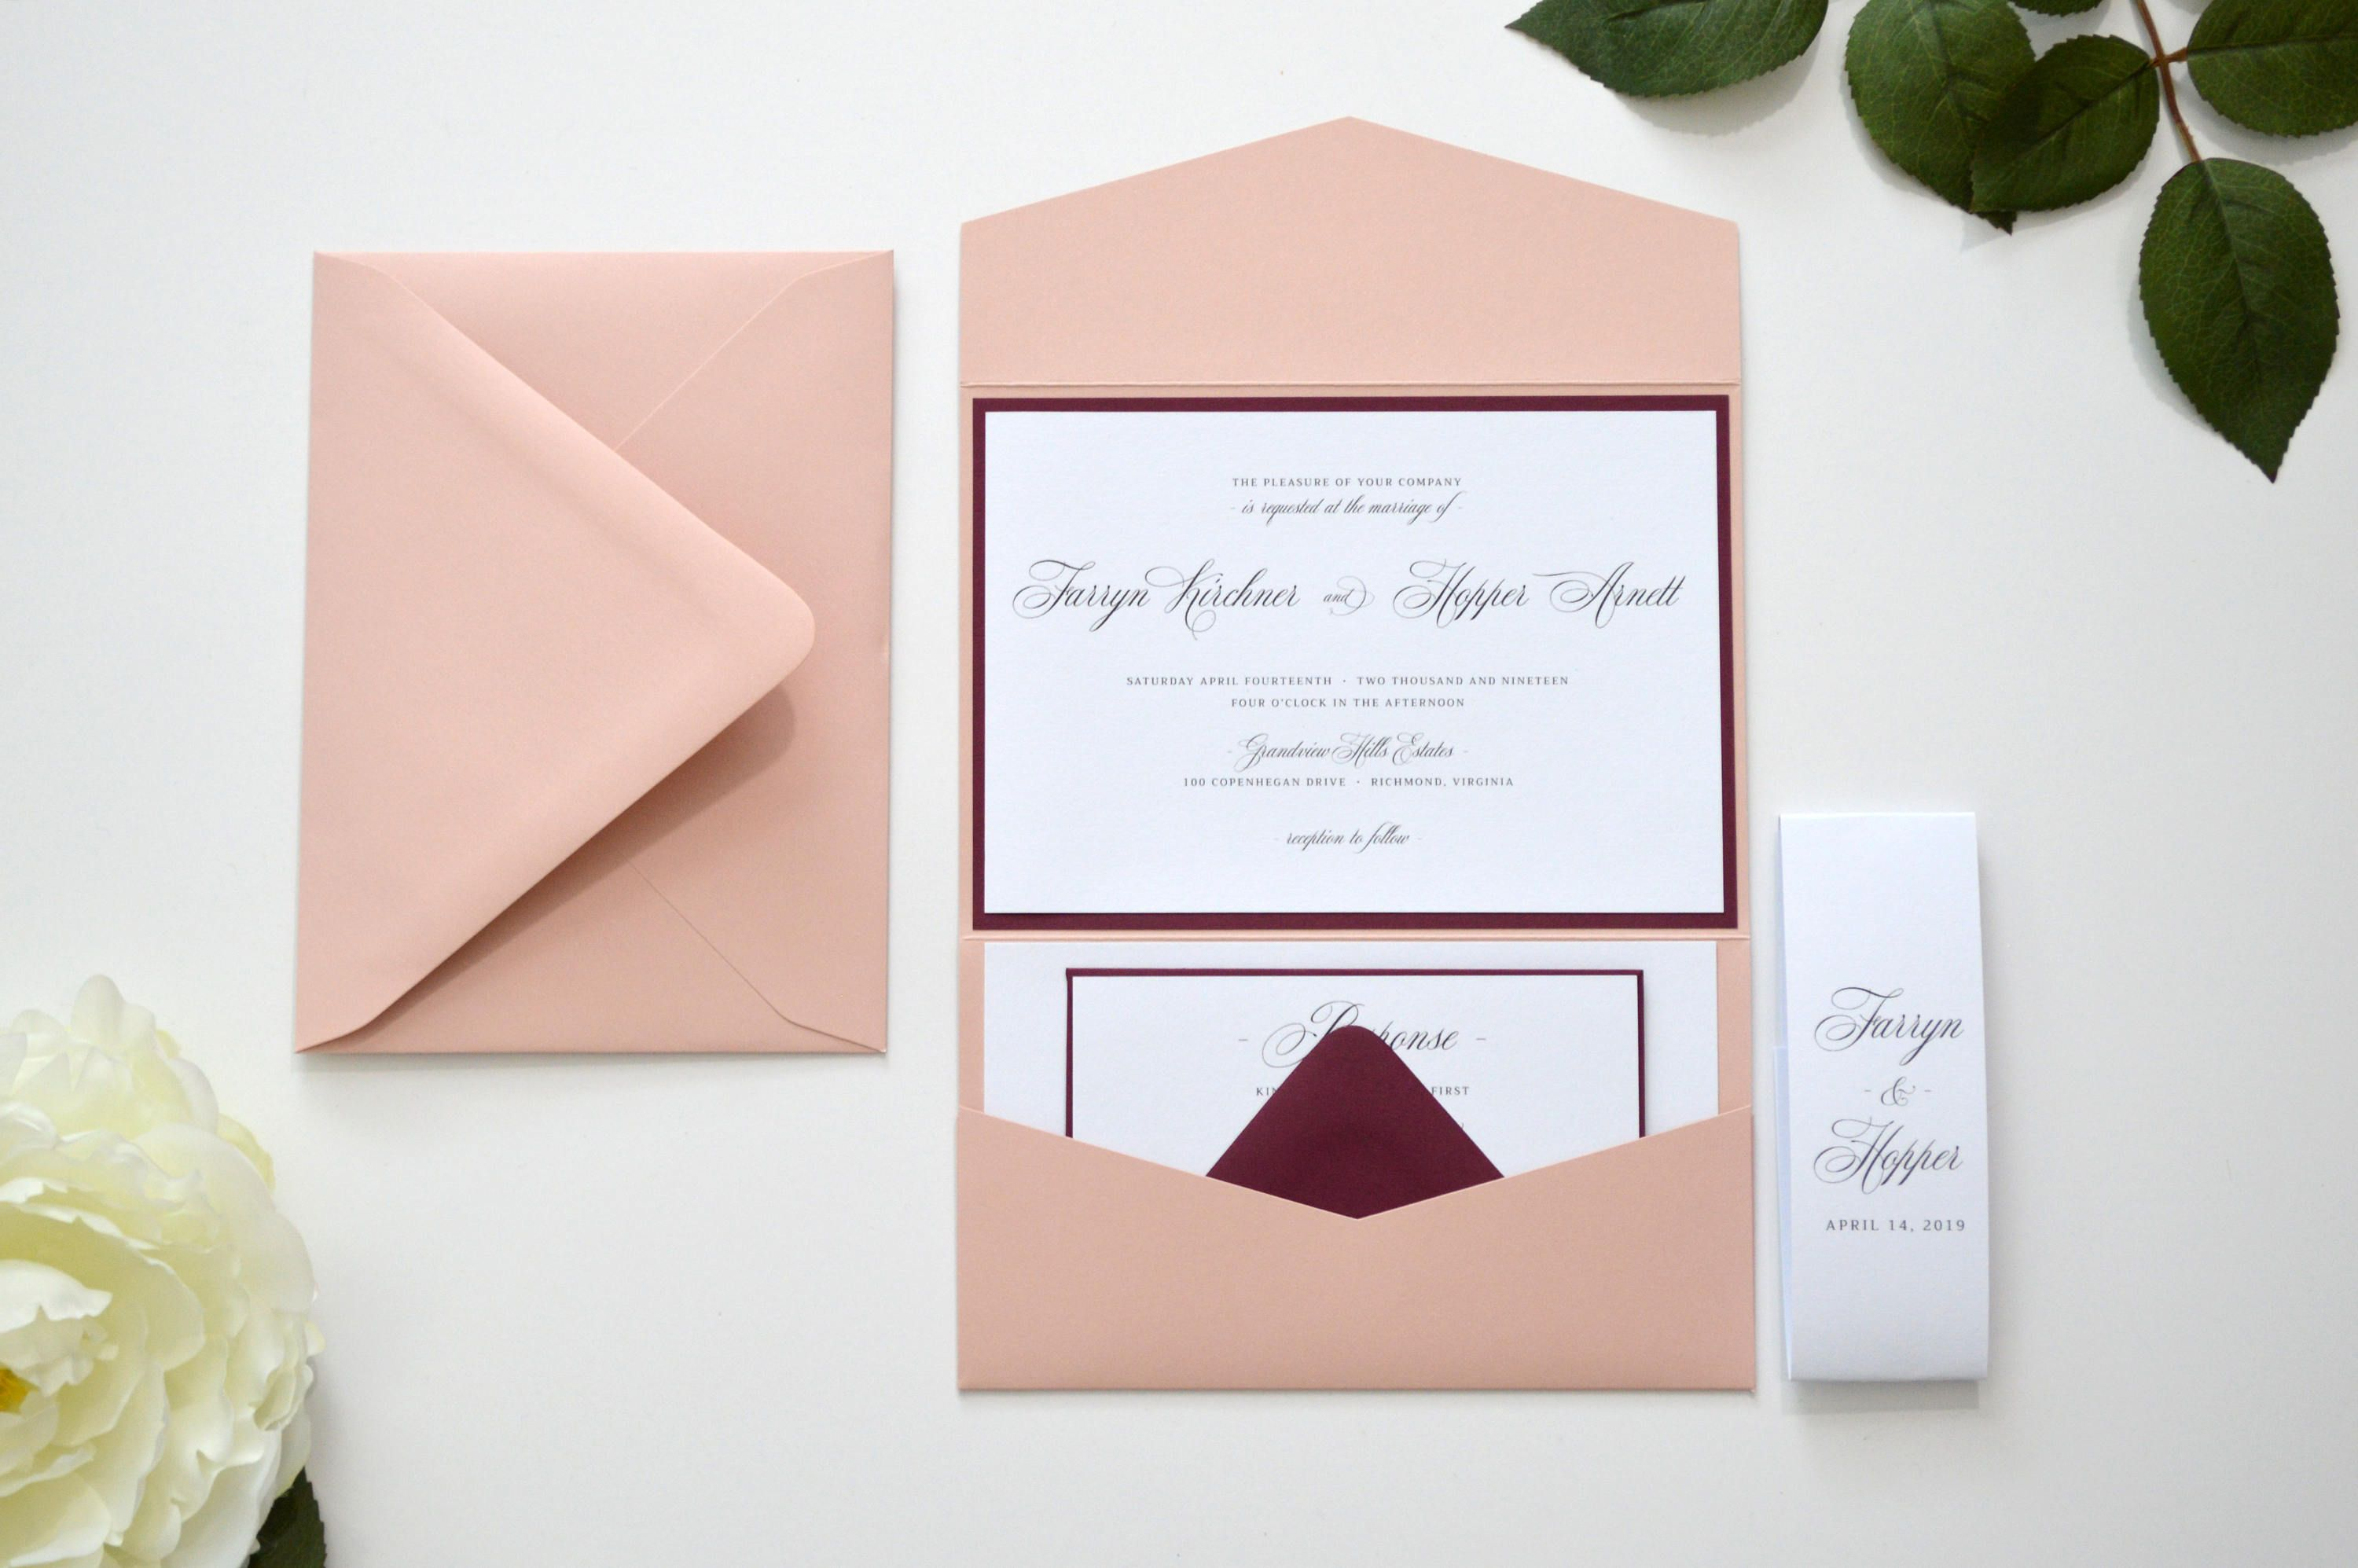 Blush Wedding Invitation Burgundy Wedding Invitation Blush And